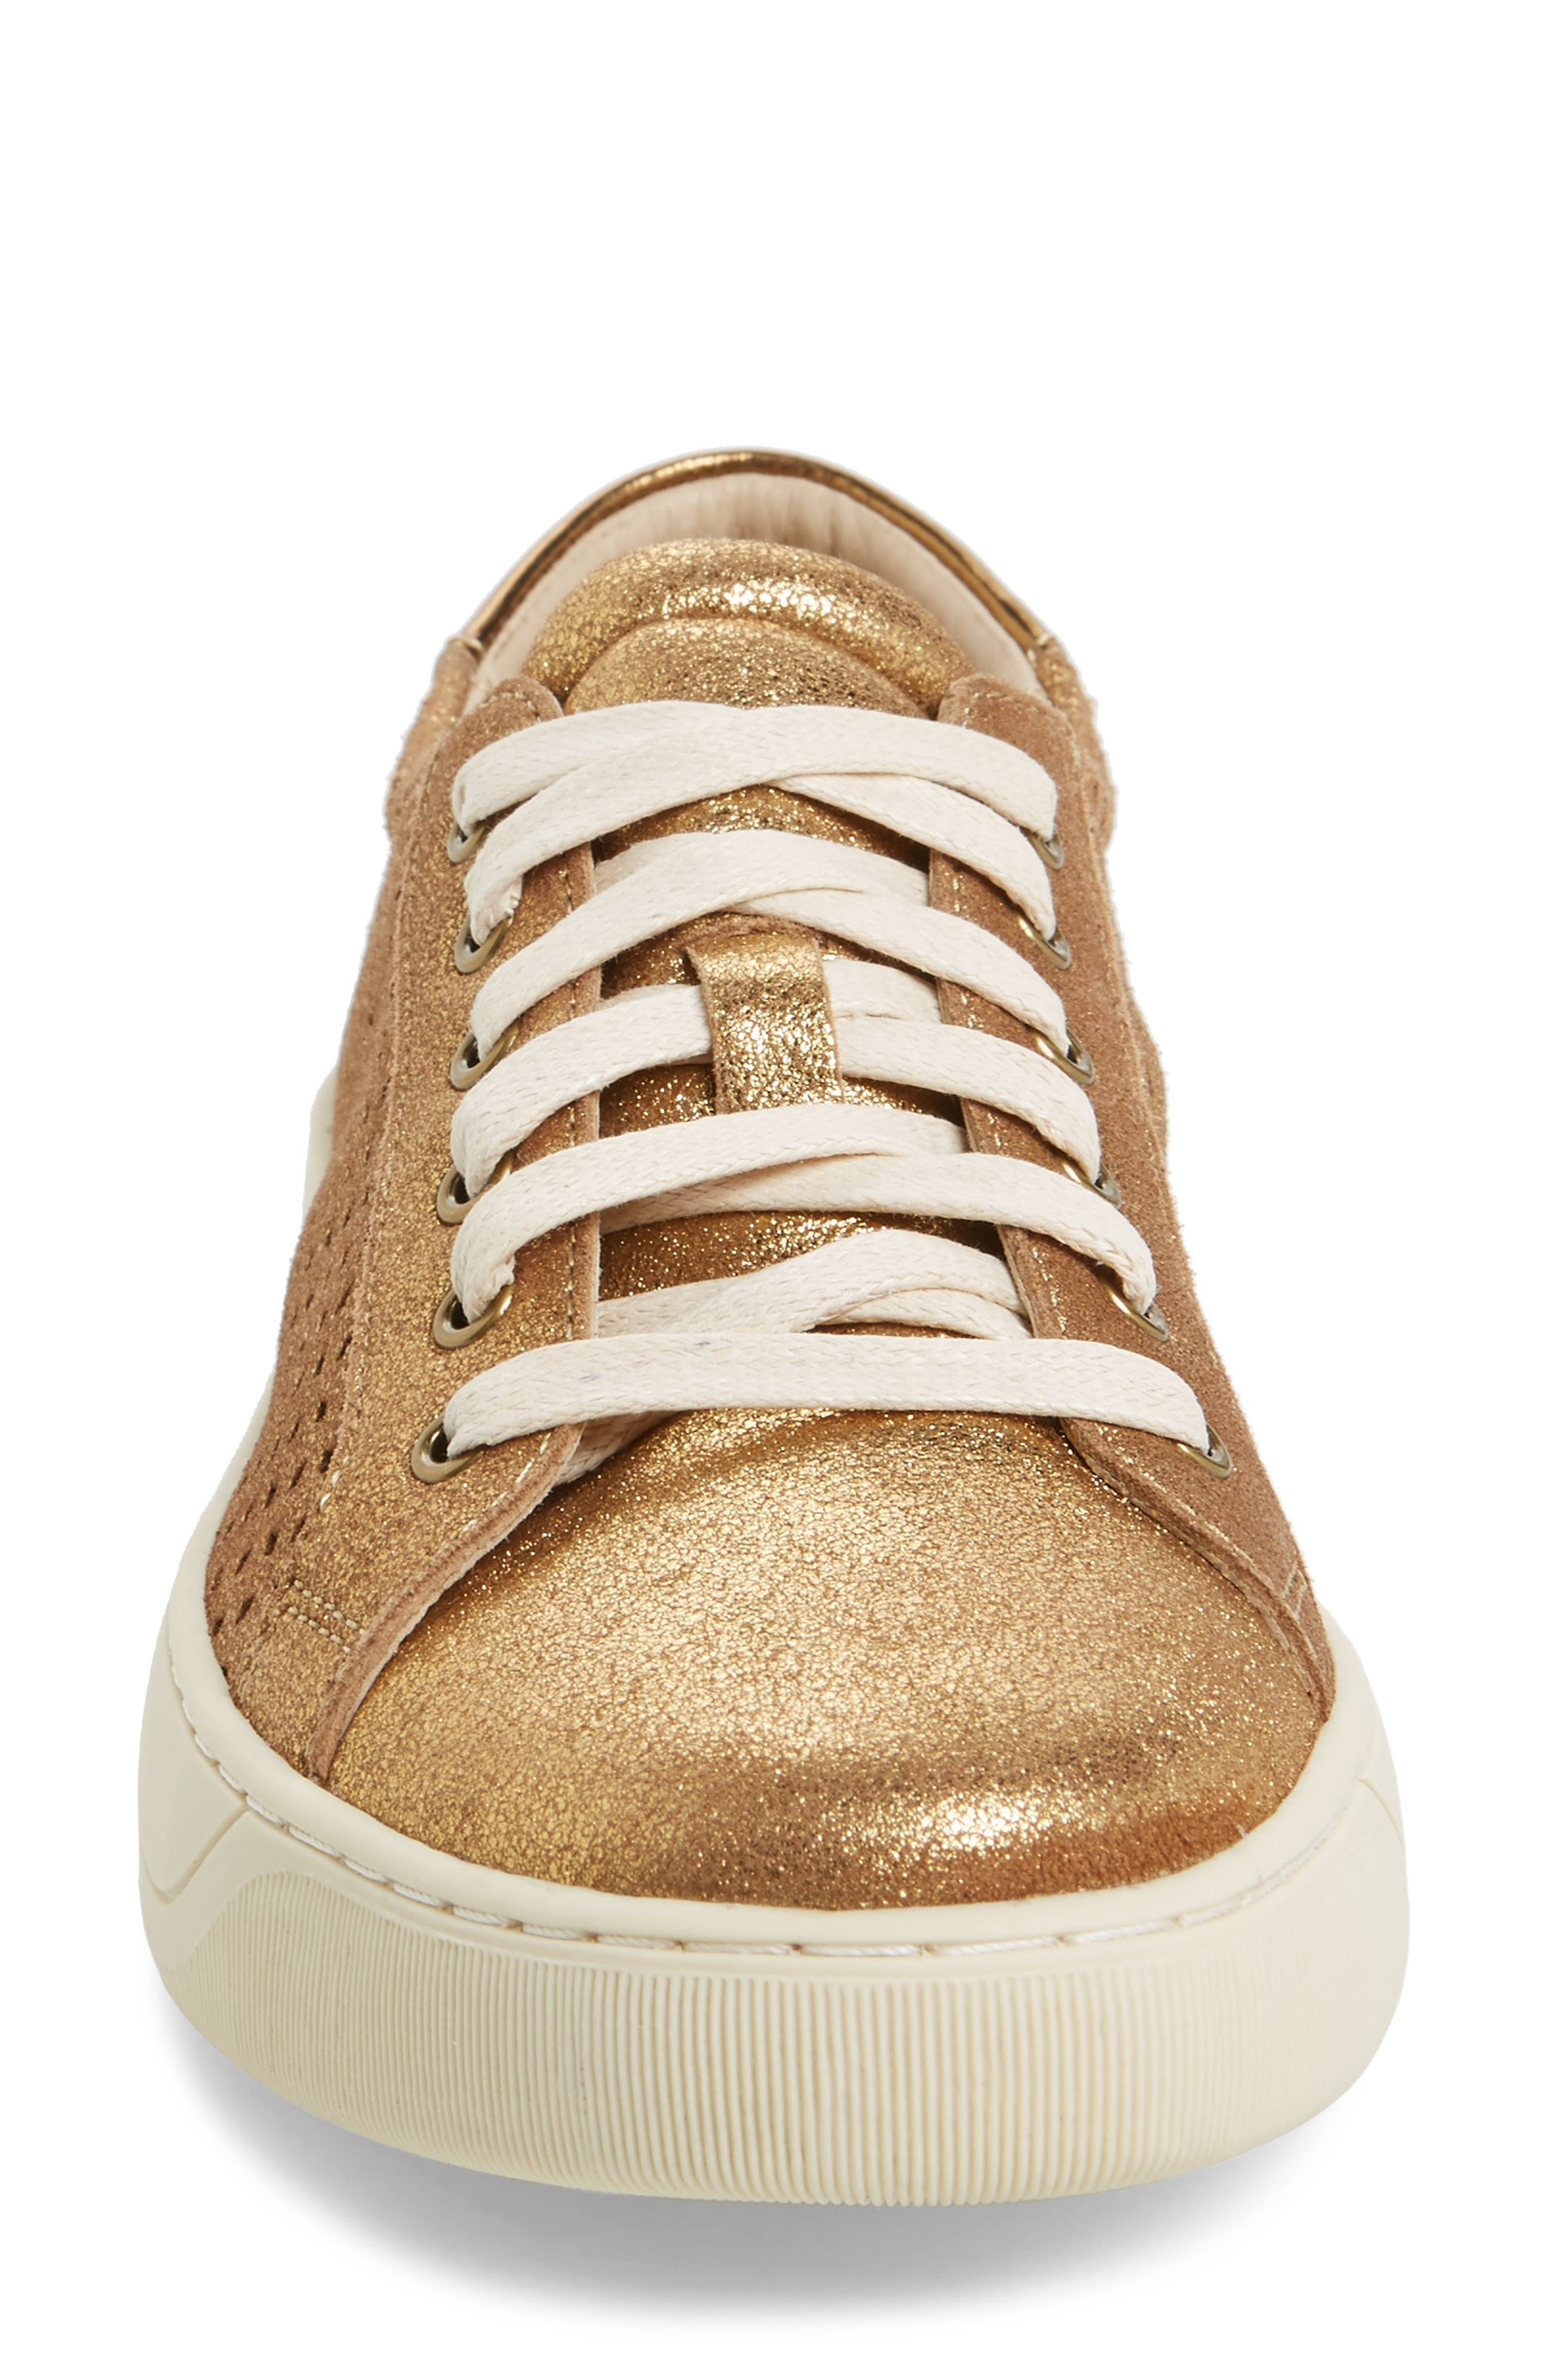 Emerson Perforated Sneaker,                             Alternate thumbnail 4, color,                             GOLD SUEDE